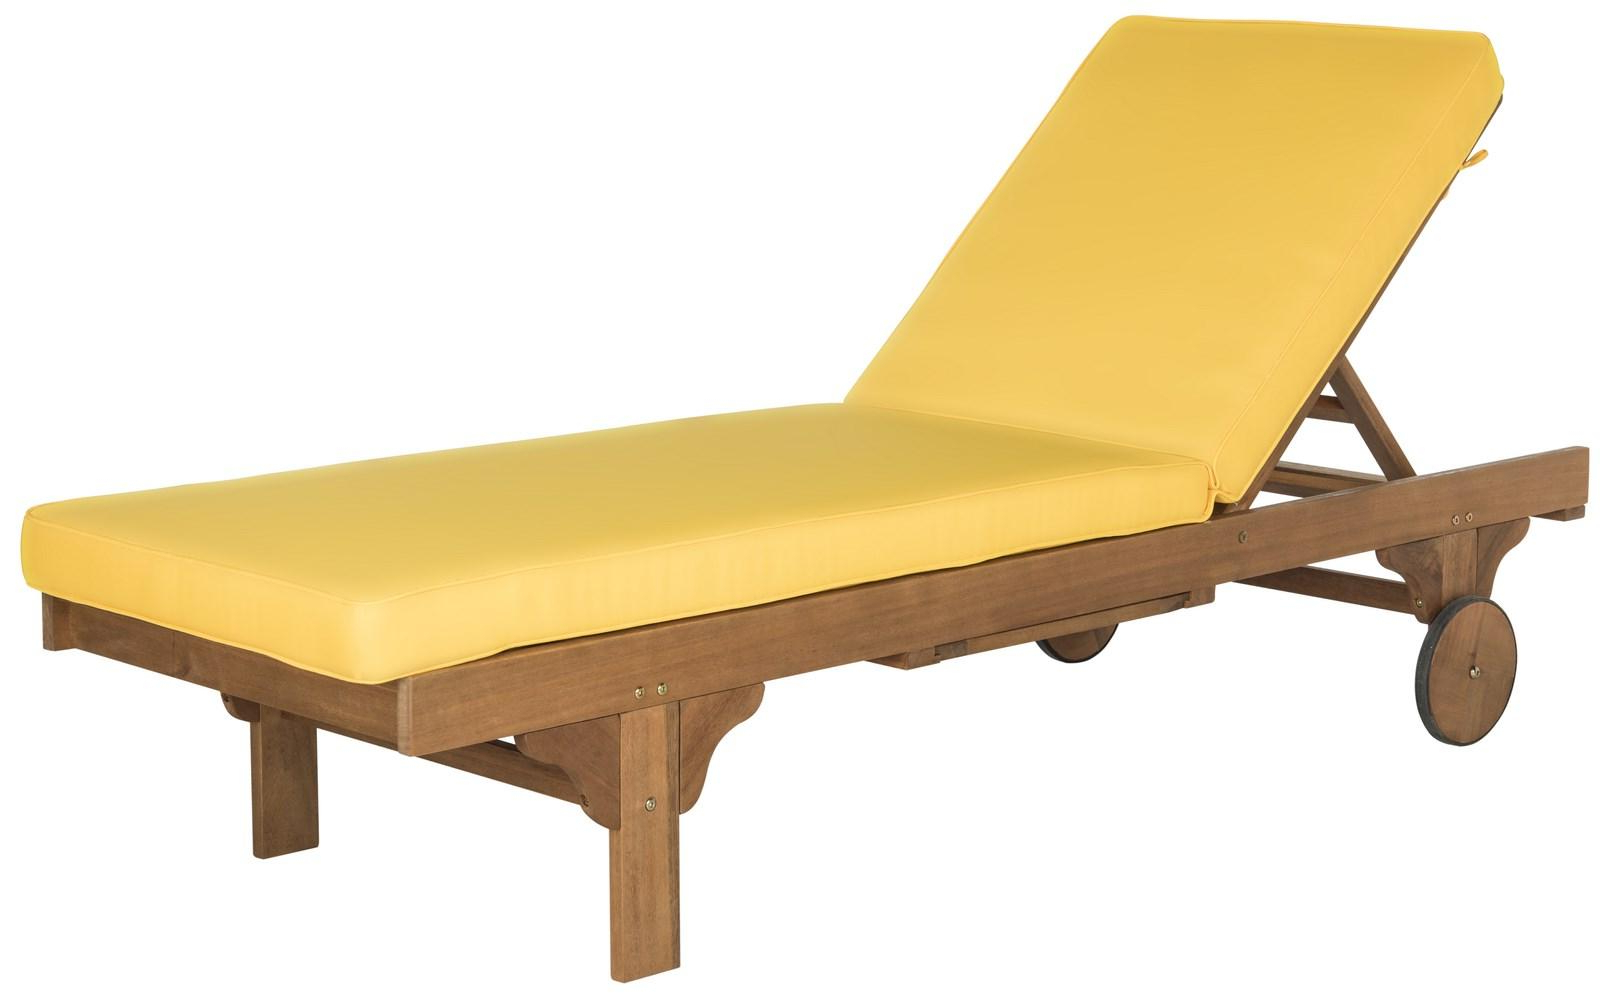 Eucalyptus Teak Finish Outdoor Chaise Loungers With Cushion In Well Known Chaise Lounge Chair (View 5 of 25)